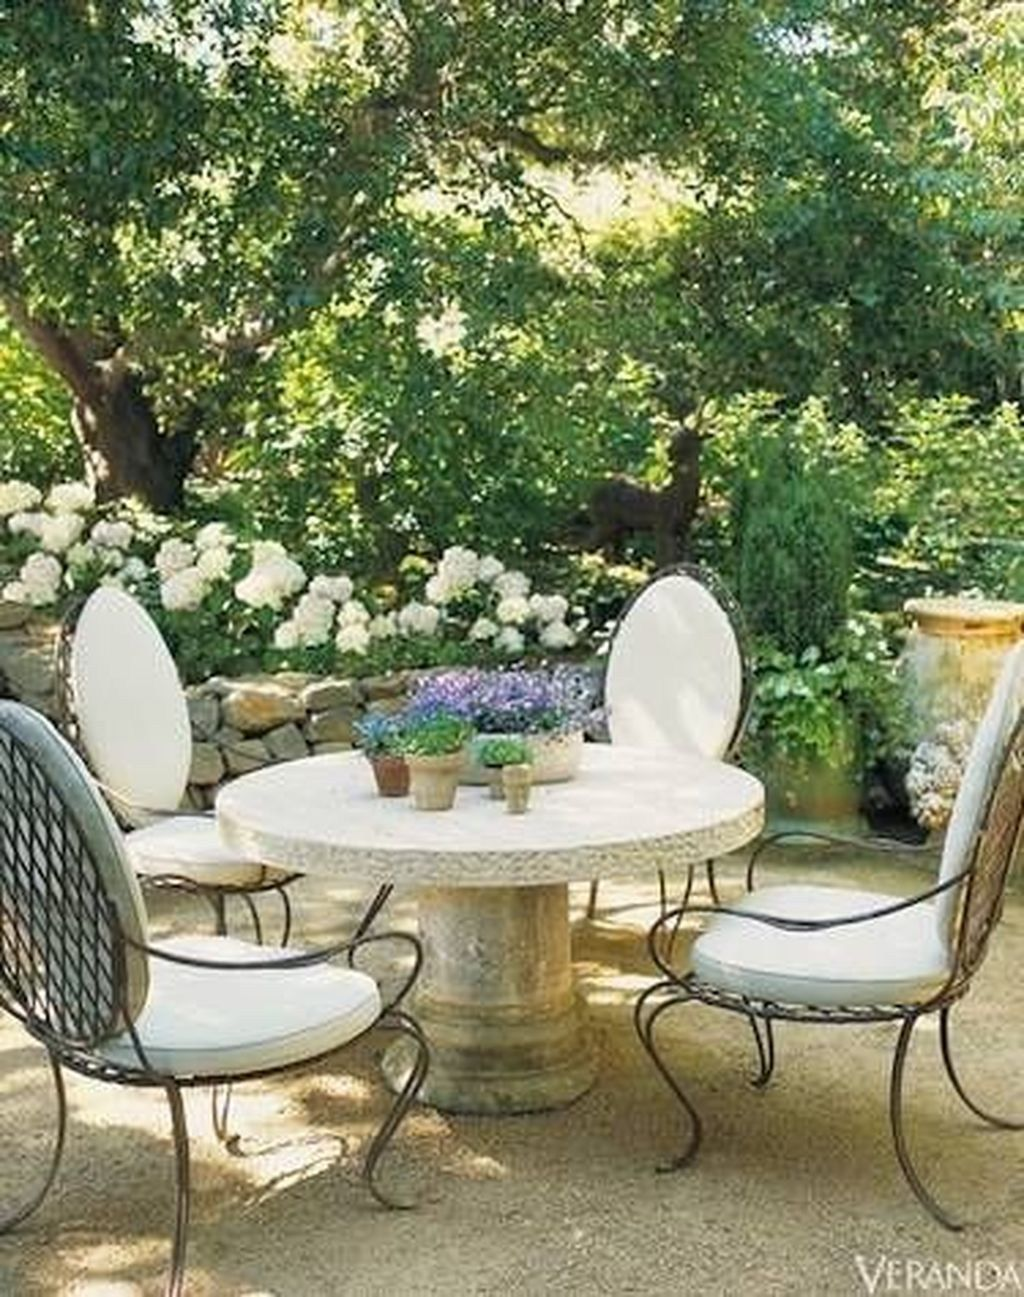 37 Captivating French Country Patio Ideas That Make Your Flat Look